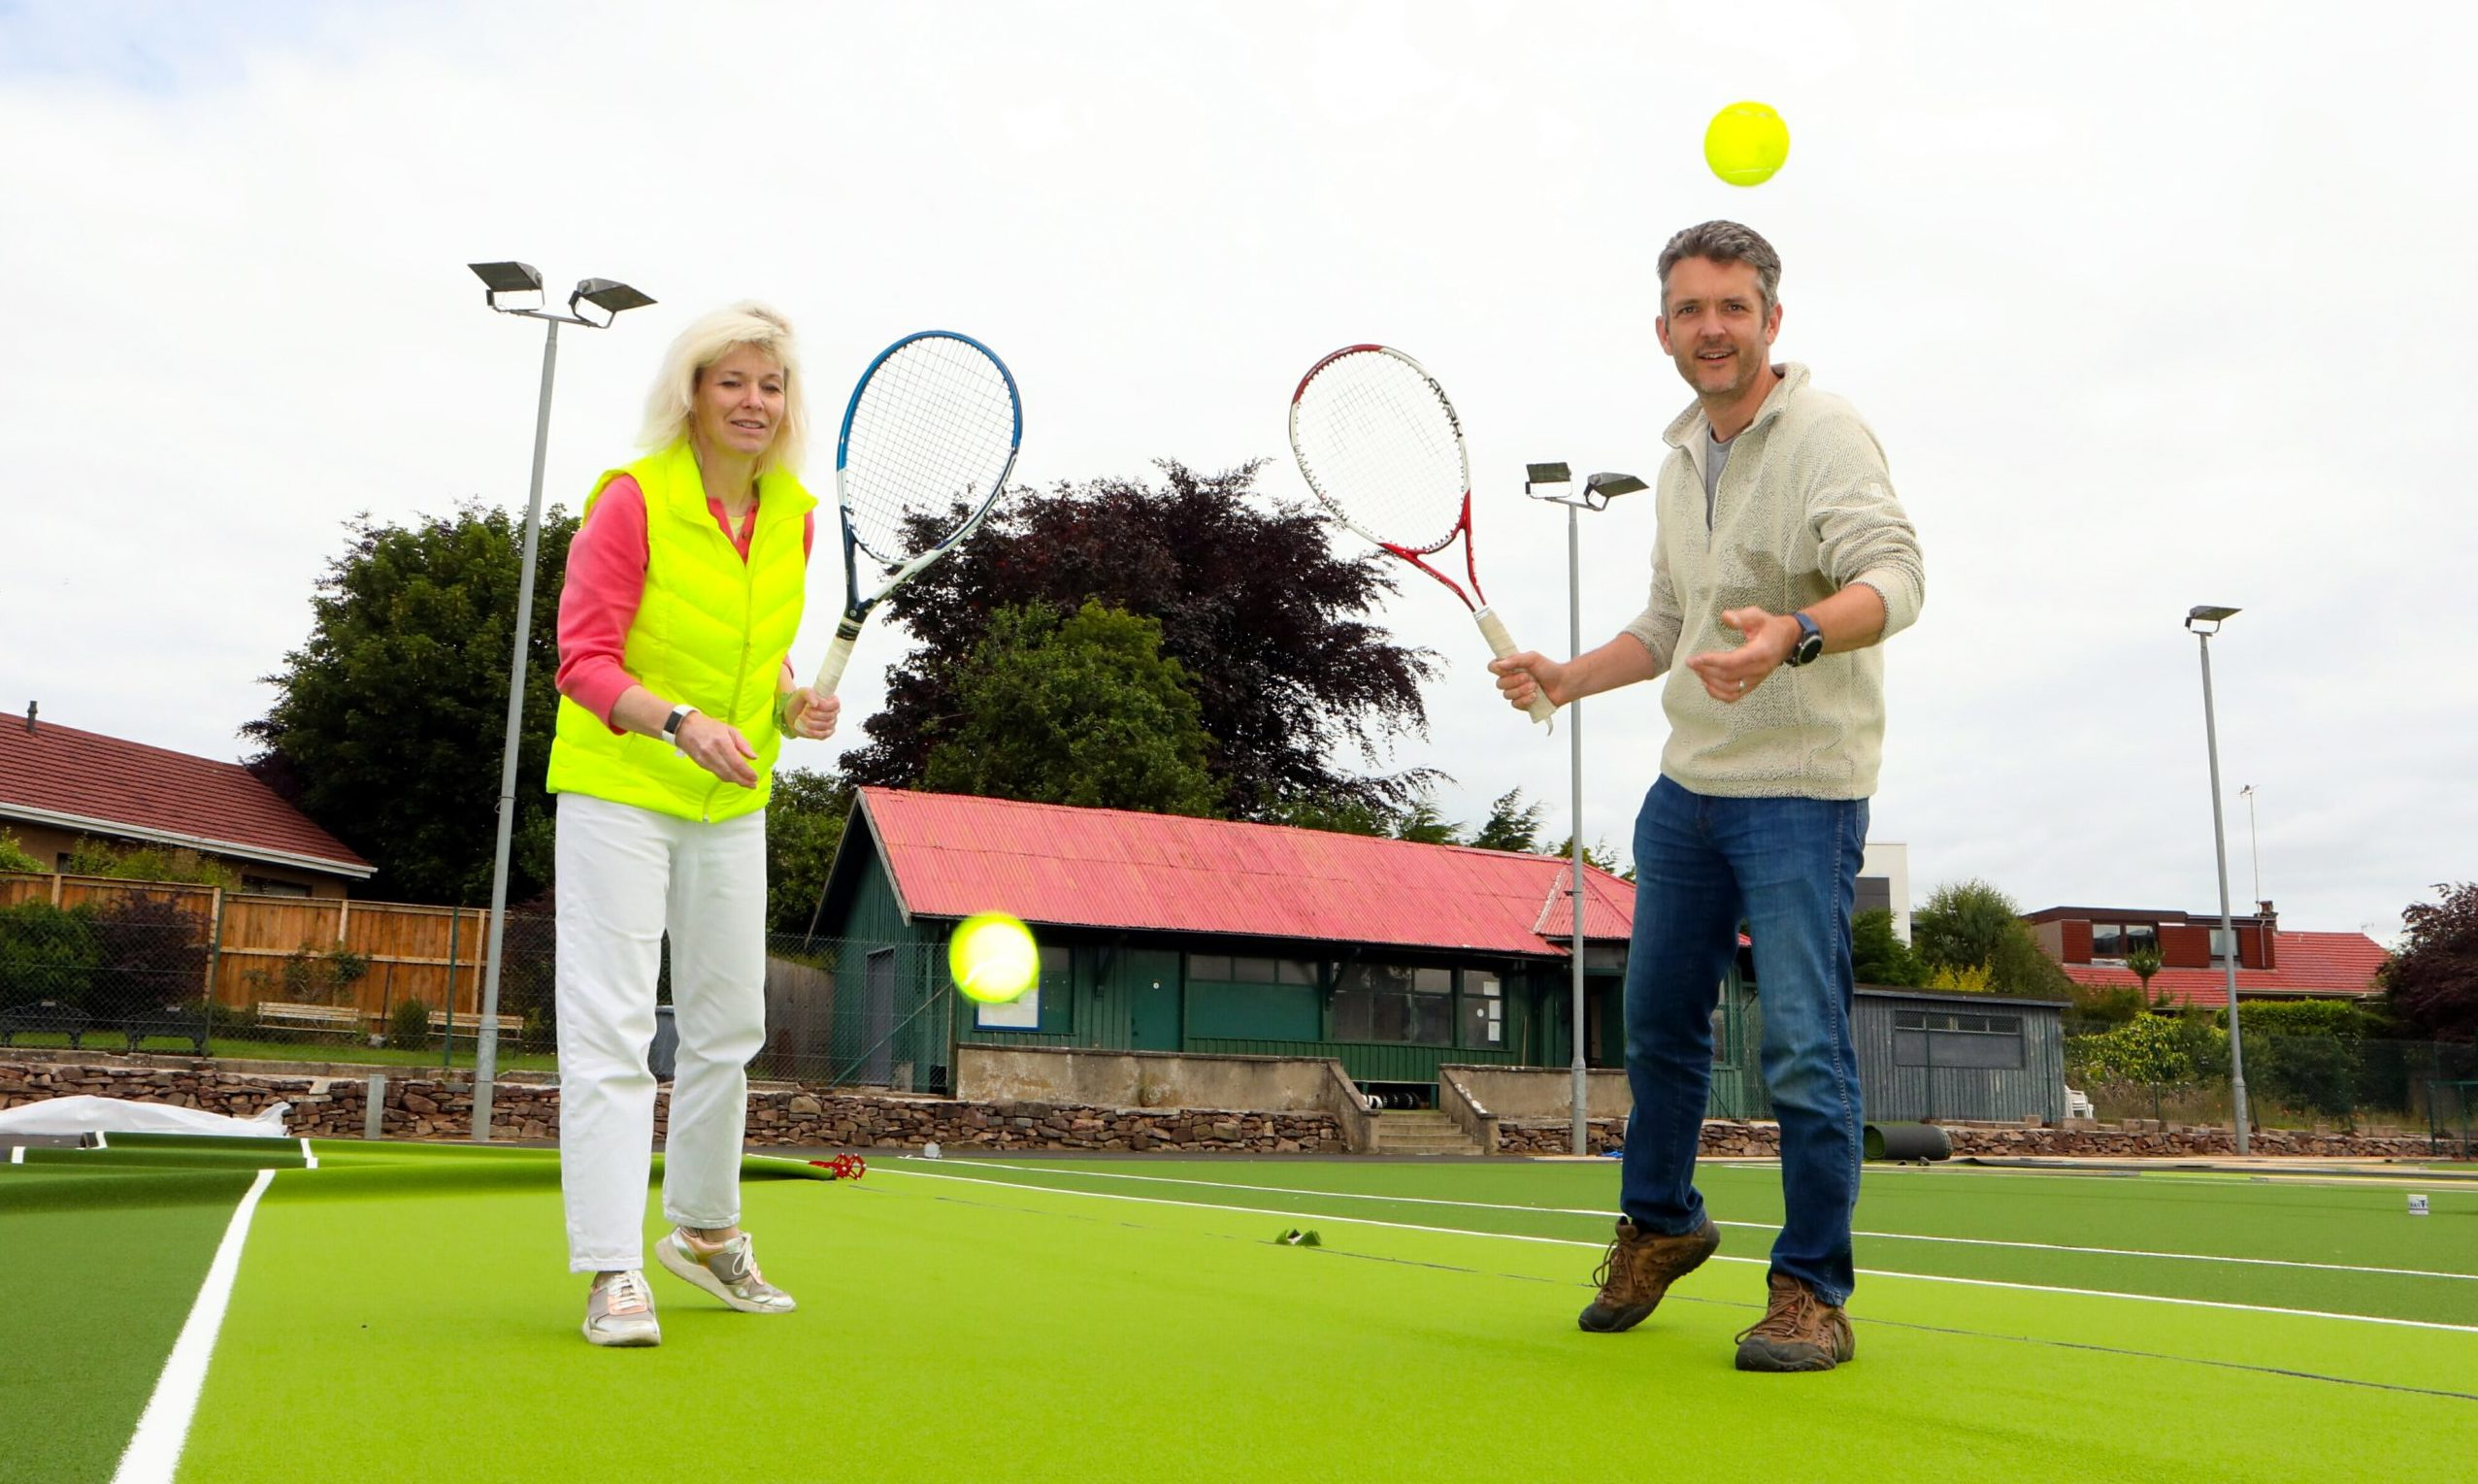 Club president Amanda Barclay and member Colin Birtwistle on the new courts as the project nears completion.